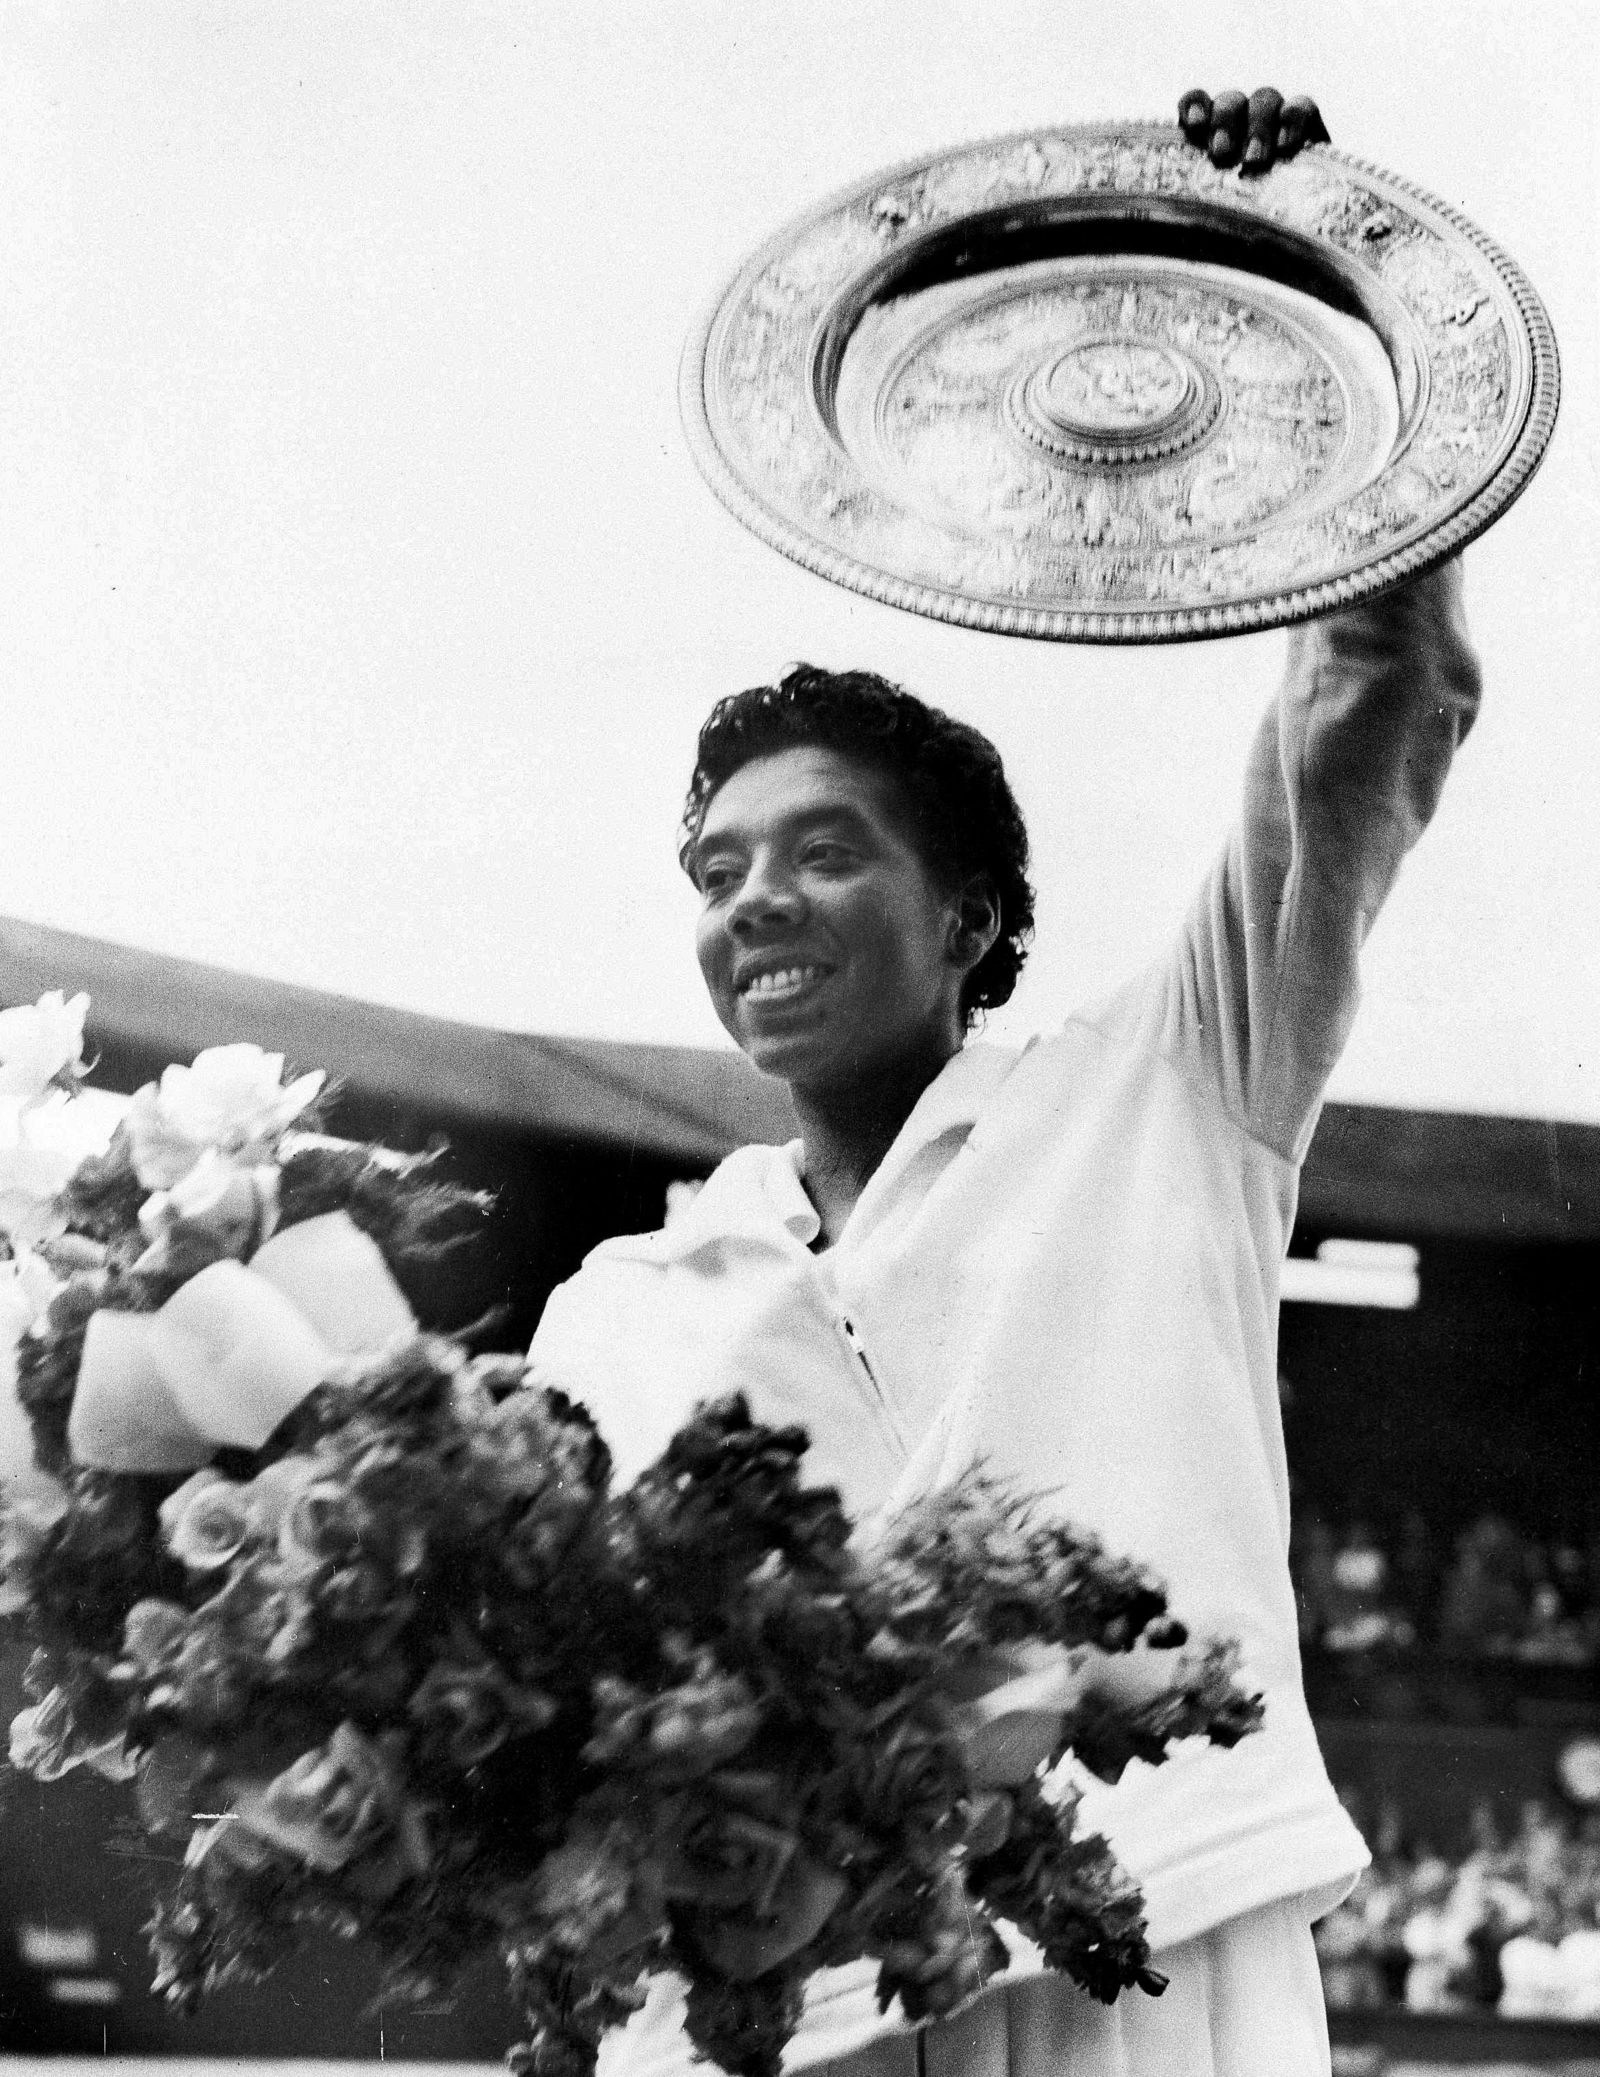 FILE - In this July 5, 1958, file photo, New York's Althea Gibson waves the winner's plate aloft after she defeated Britain's Angela Mortimer in the women's singles tennis final at Wimbledon, England. Gibson won an amazing 11 Grand Slam titles in three years from 1956-58, including the French Open, Wimbledon and U.S. Open. On Monday, Aug. 26, 2019, the USTA will unveil a statue in her honor at the U.S. Open. (AP Photo/File)